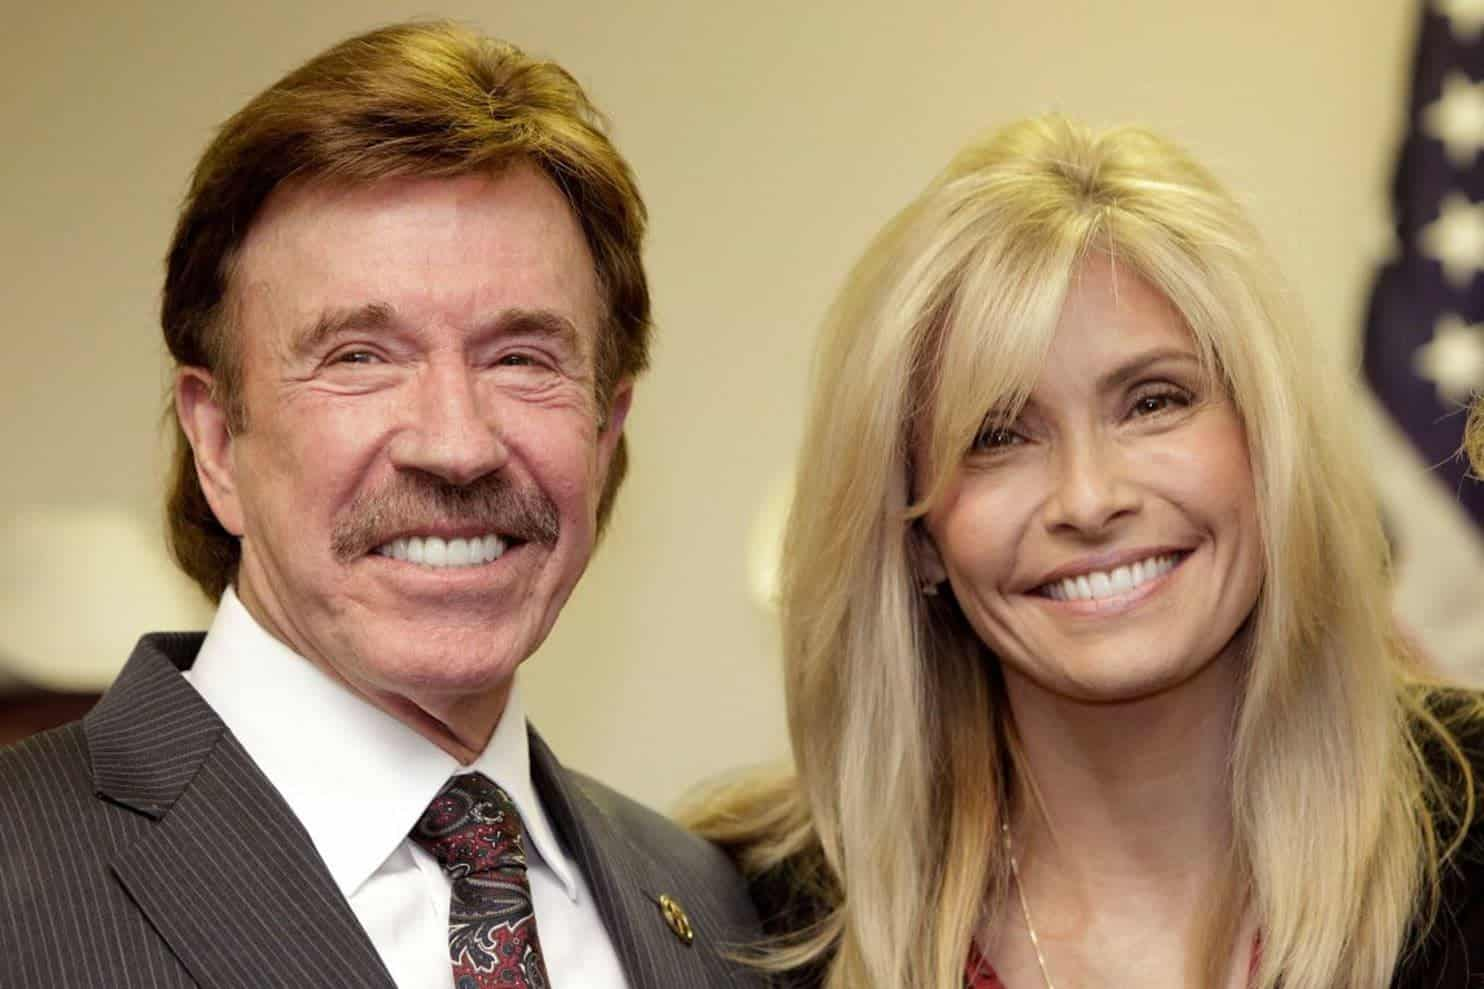 Chuck Norris, Wife Among Those Filing Lawsuits for Gadolinium Deposition Disease